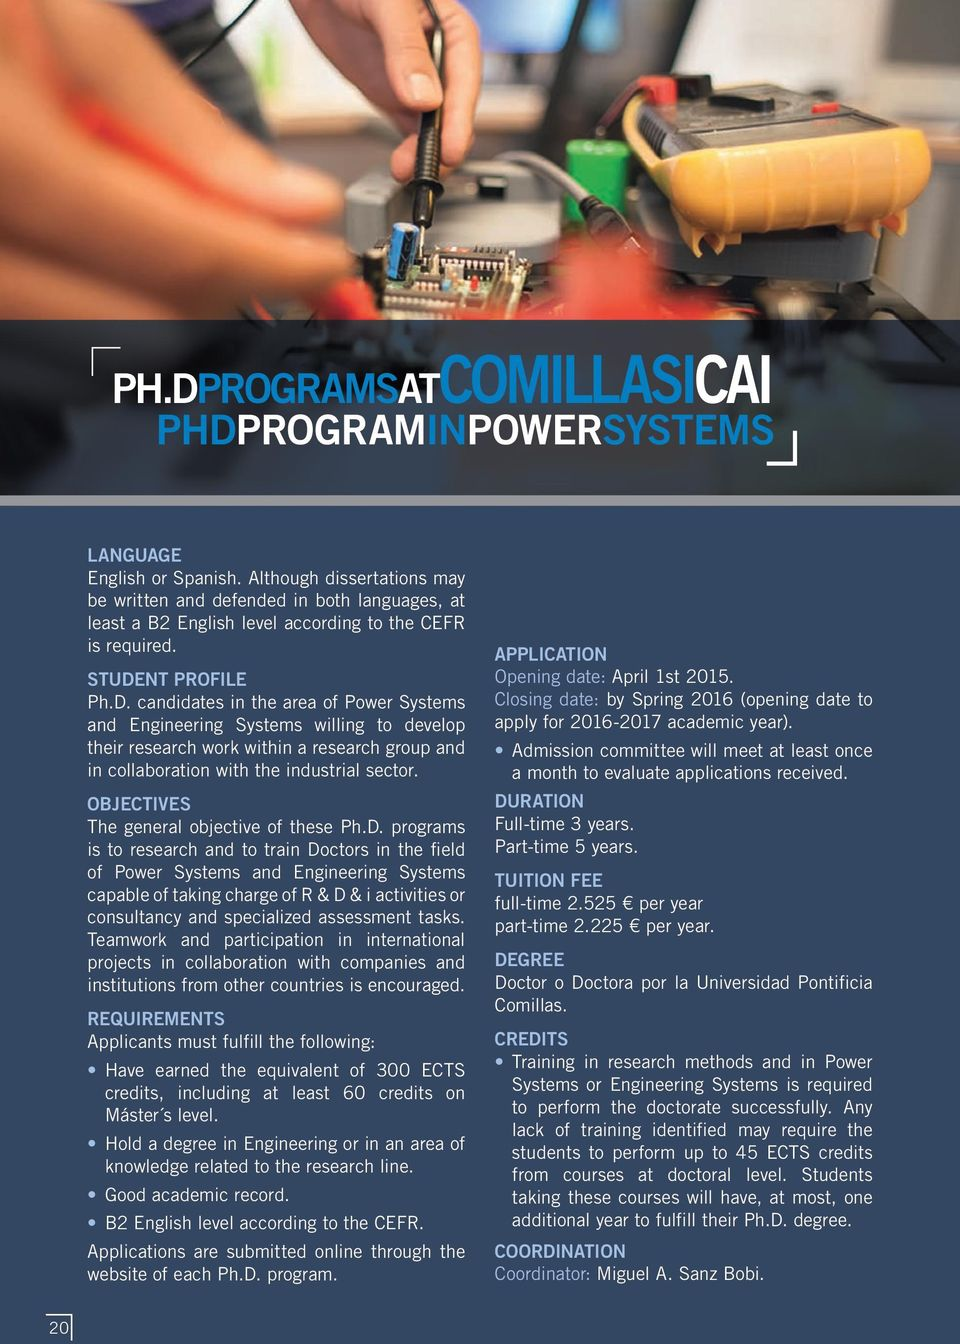 candidates in the area of Power Systems and Engineering Systems willing to develop their research work within a research group and in collaboration with the industrial sector.